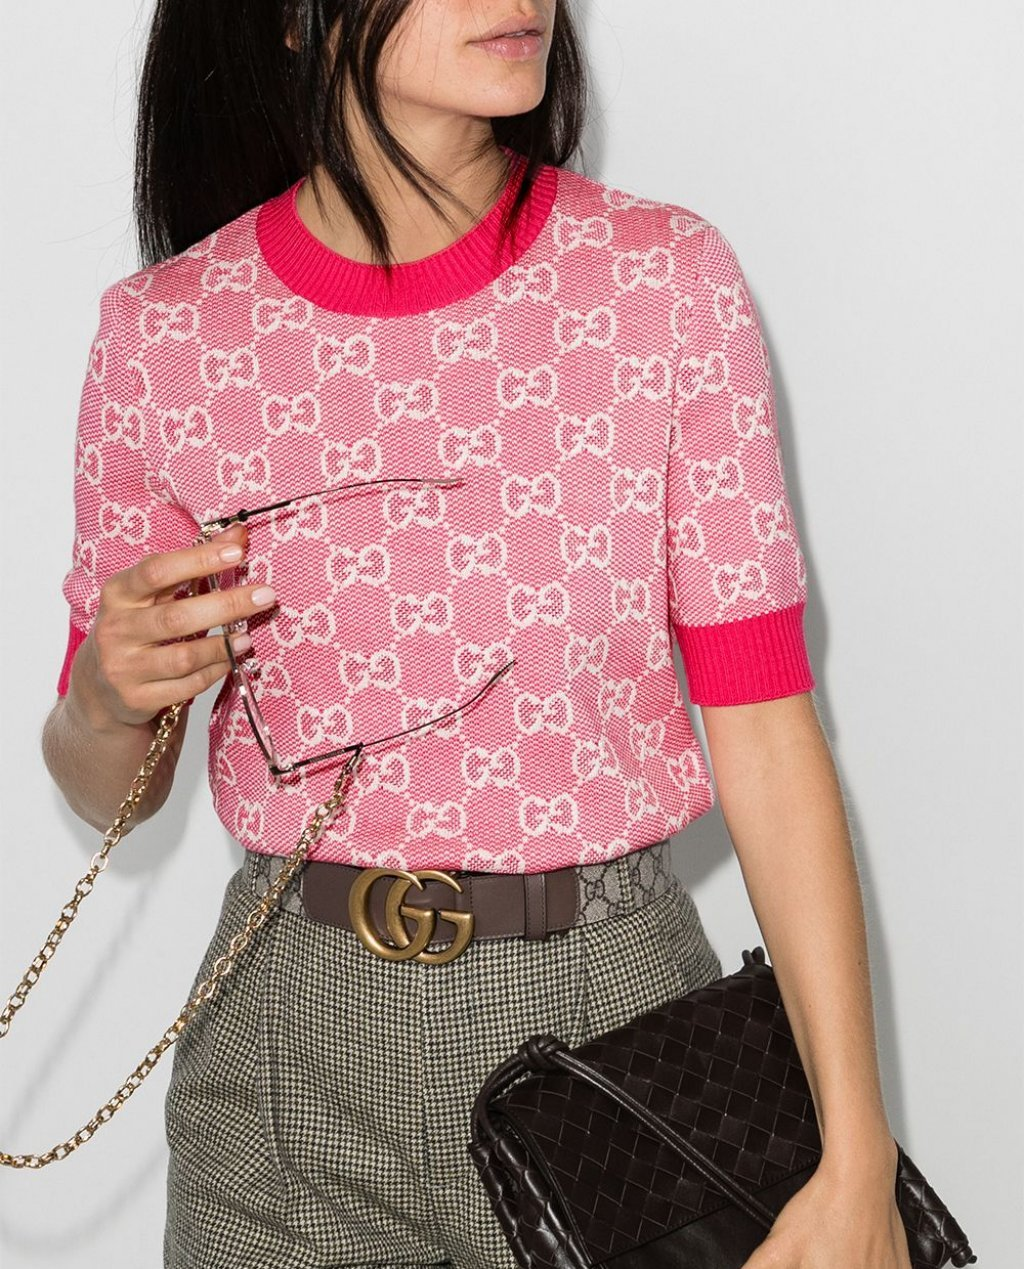 Gucci GG jacquard knitted top